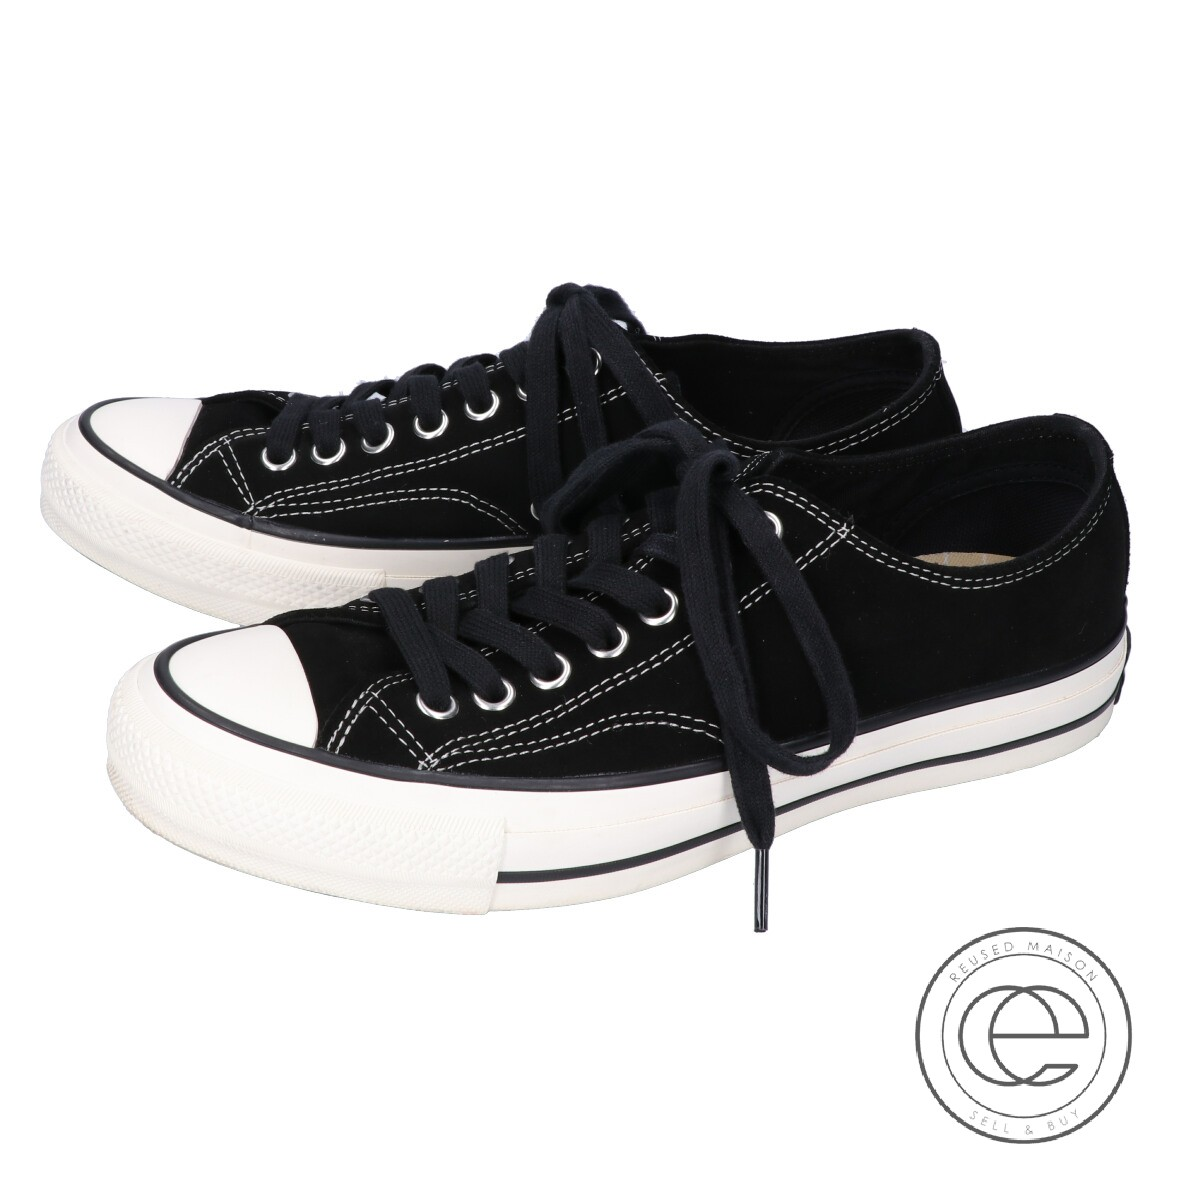 grande vente f6e8c e3dfd CONVERSE ADDICT コンバースアディクト 1CJ541 CHUCK TAYLOR SB-SUEDE OX suede  low-frequency cut sneakers 27 BLACK/BLACK men